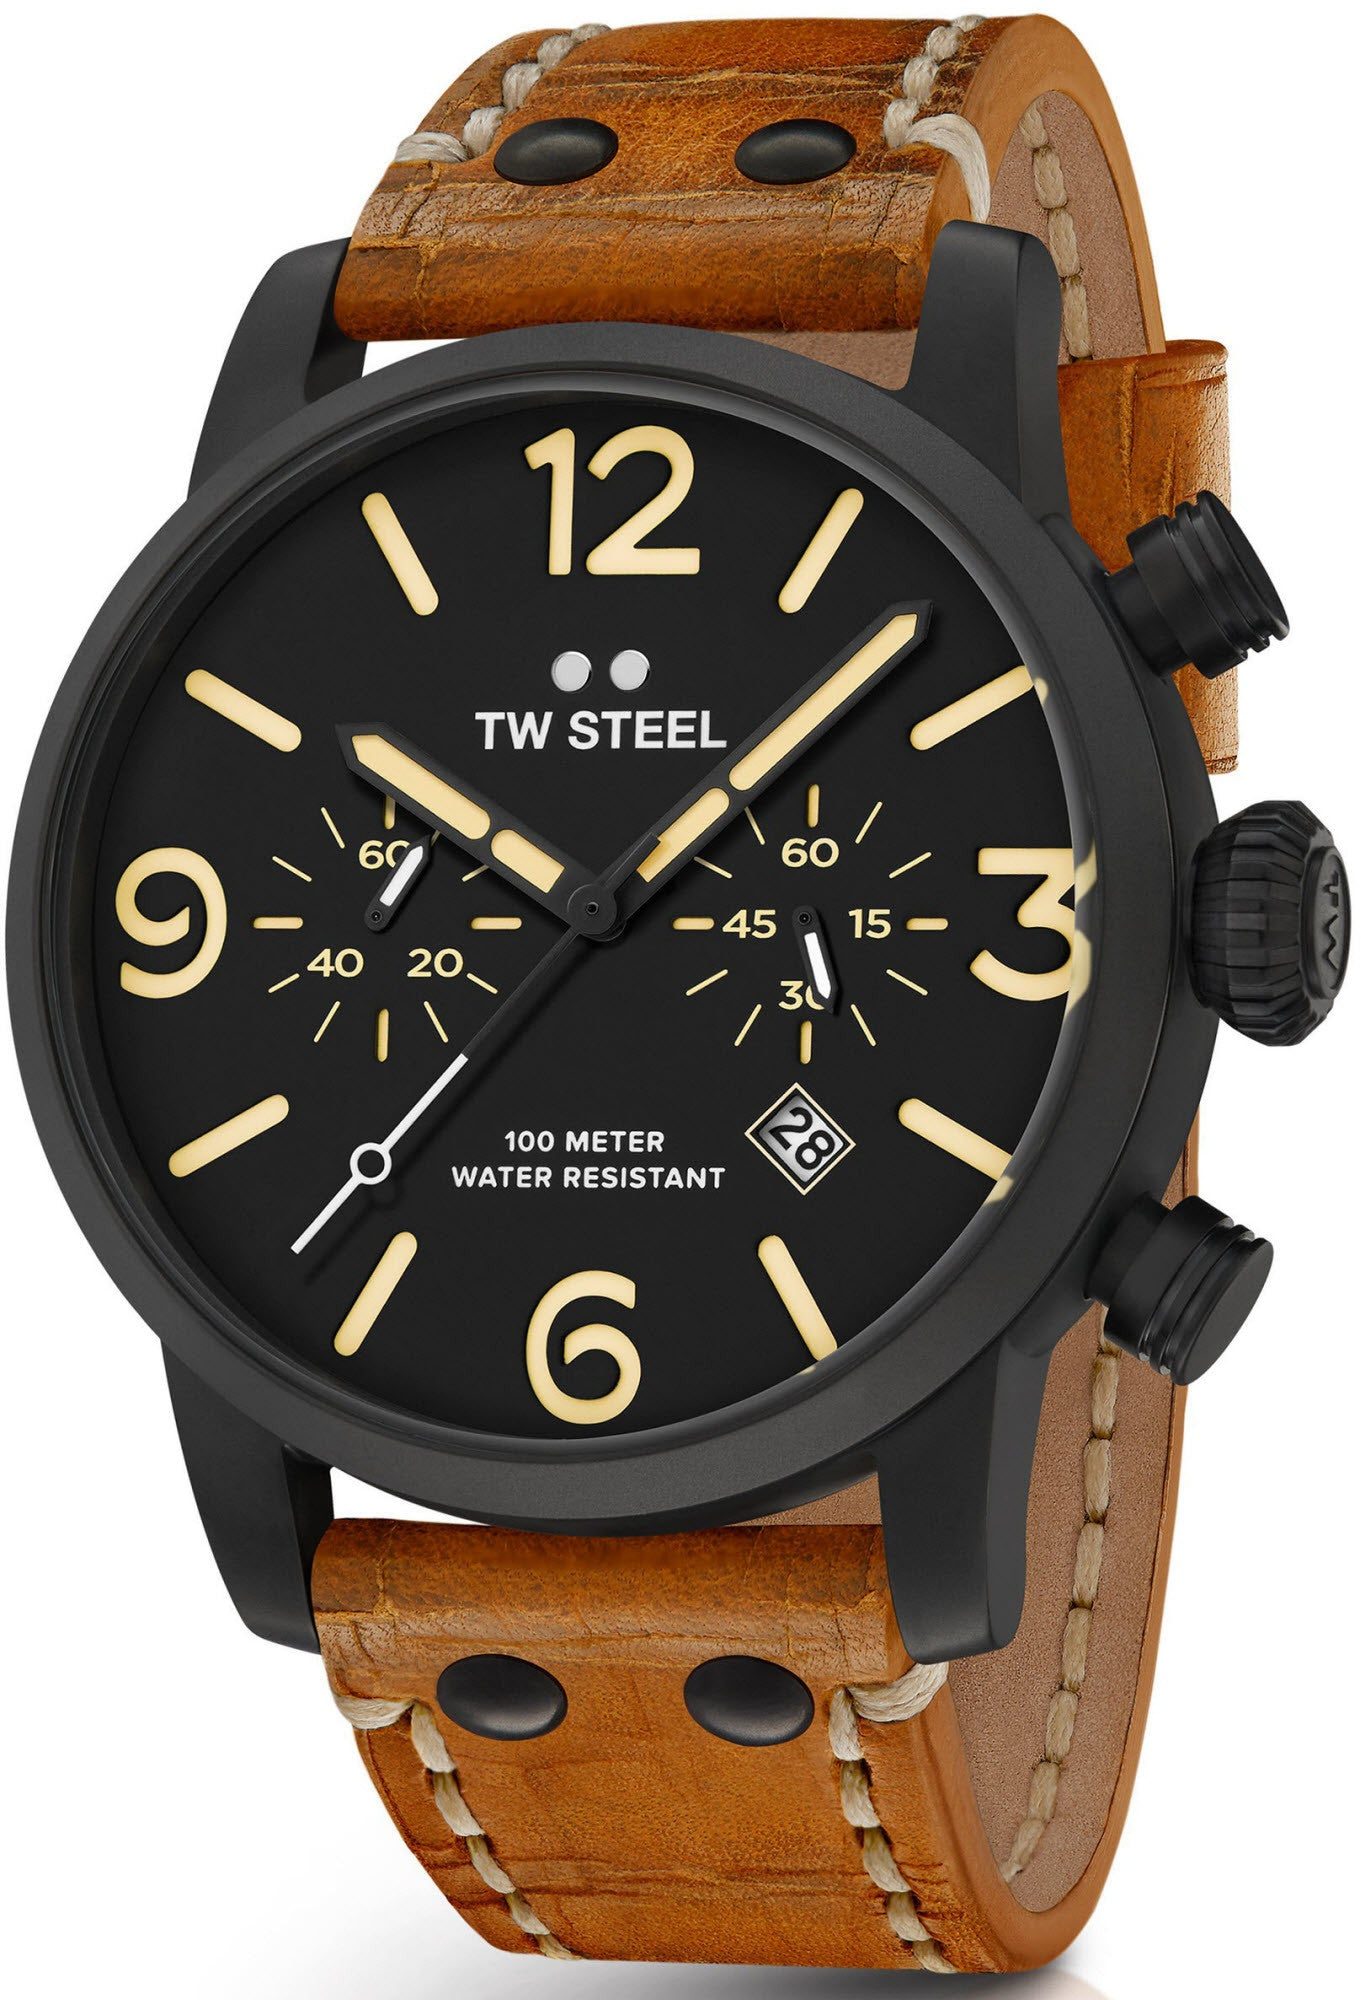 r watches victorinox leather comments maverick a strap brown with